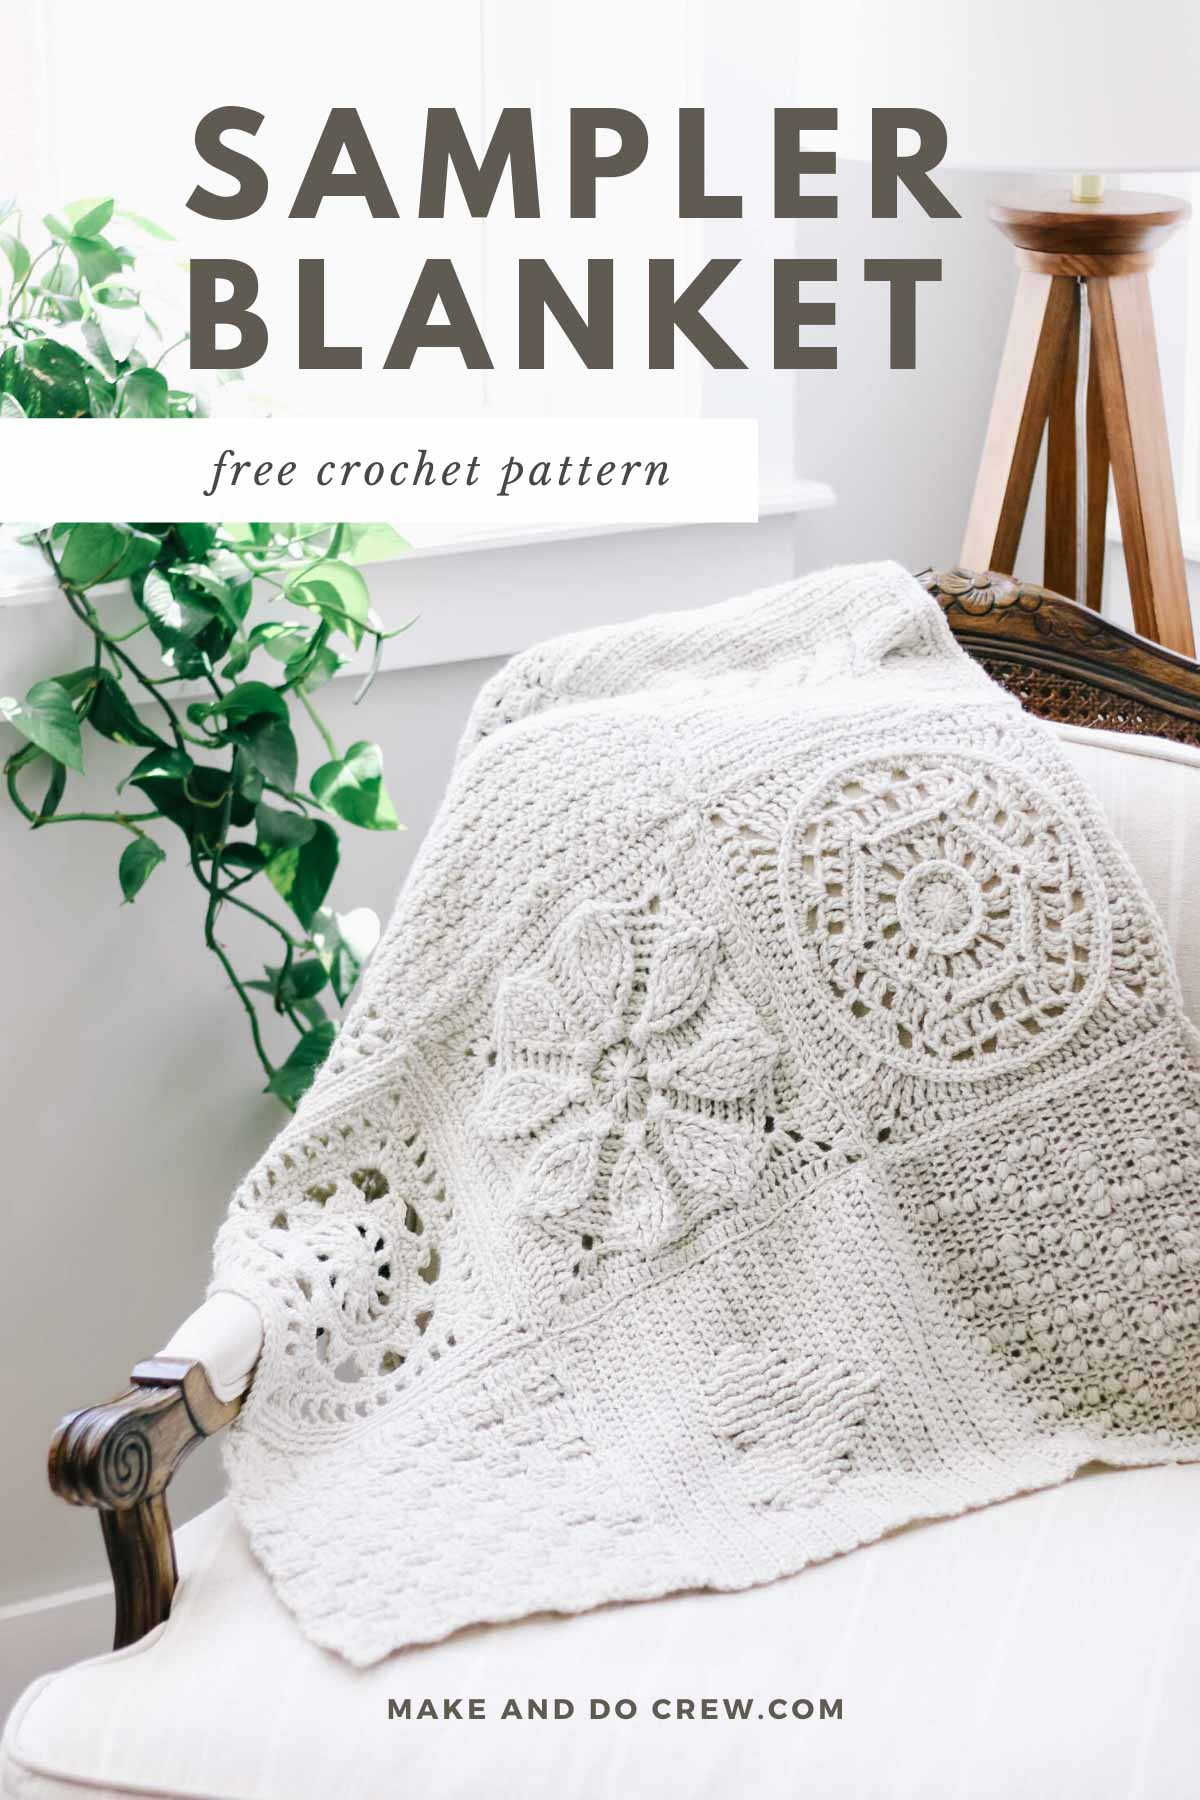 A crochet sampler blanket made from Lion Brand Wool Ease yarn draped over a chair.